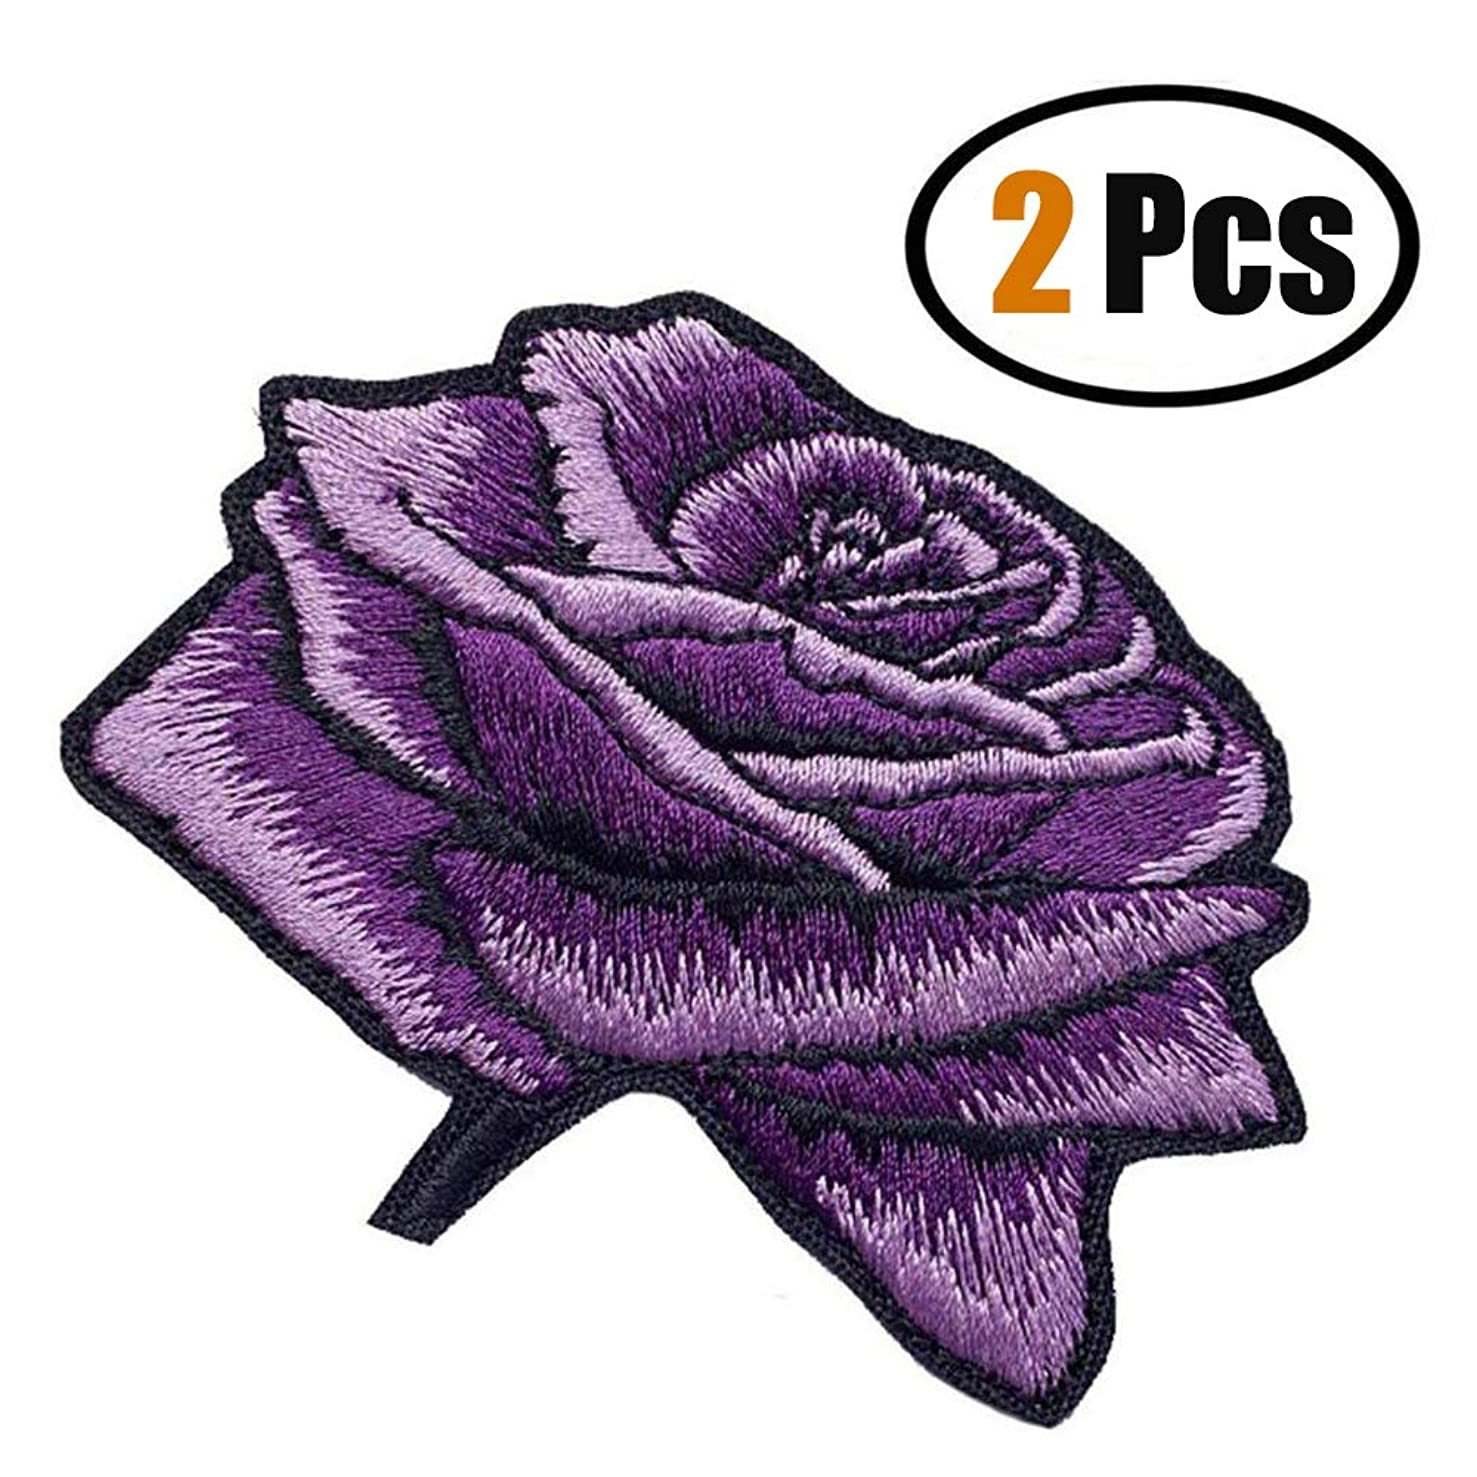 ZOOPOLR 2 Pack Delicate Embroidered Patches, Purple Rose Embroidery Patches, Iron On Patches, Flower Patches,Sew On Applique Patch, Custom Backpack Patches for Women, Girls, Kids